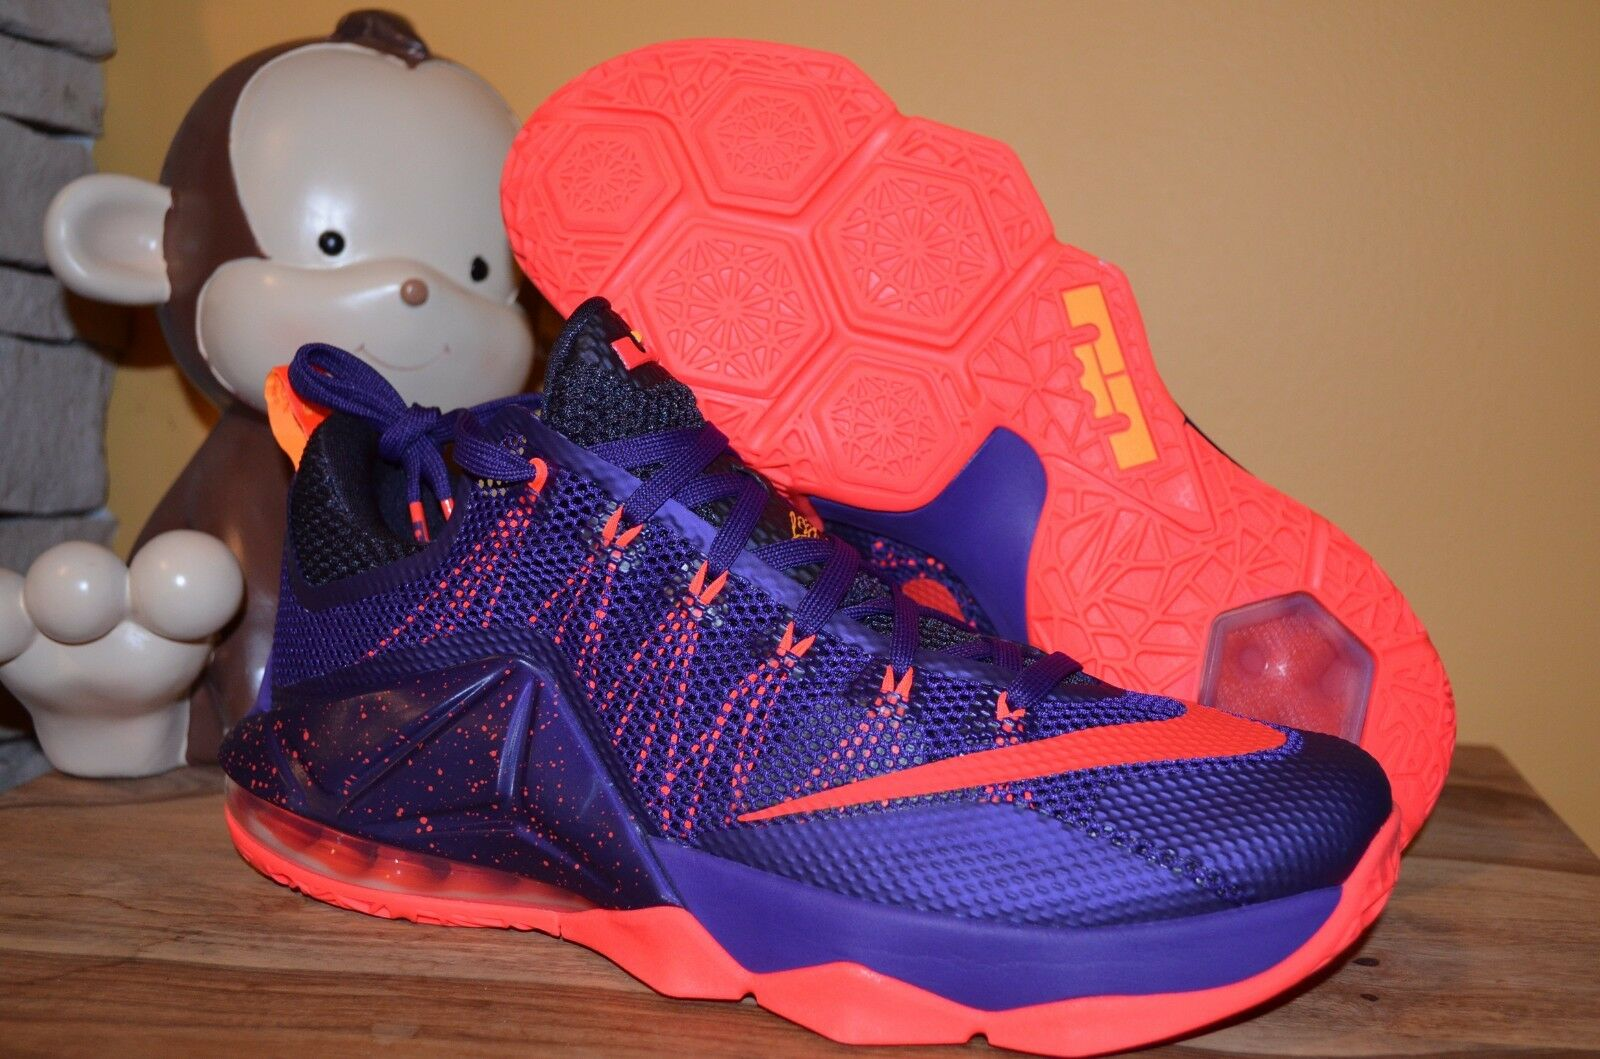 8d68d7970b0c NEW NIKE LEBRON 12 XII LOW